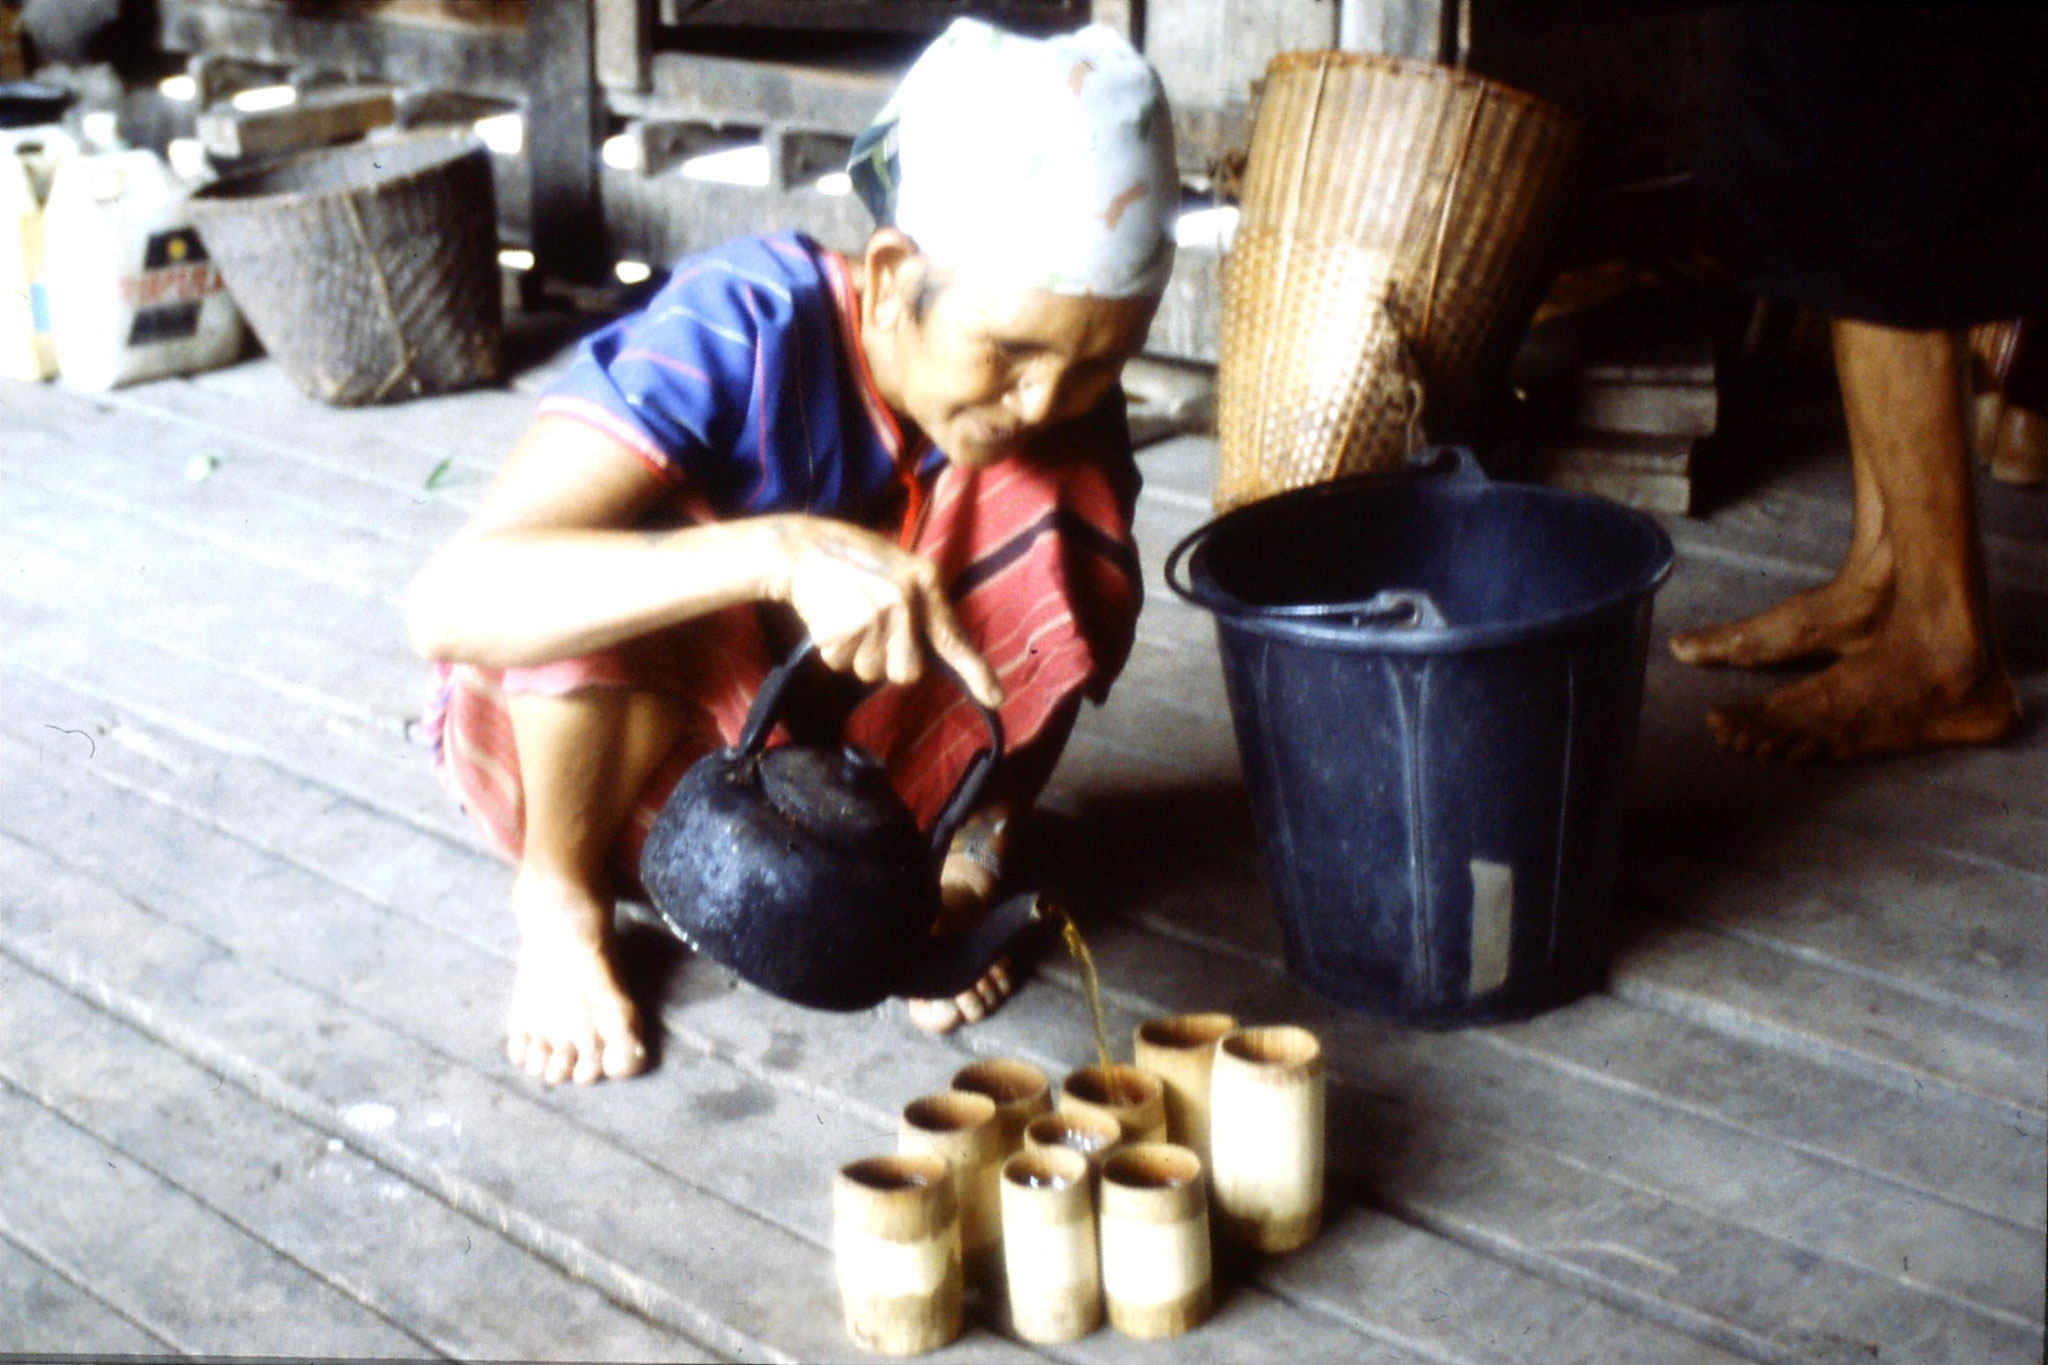 12/6/1990: 23: Trek - Hue Kom Karen village, pouring tea